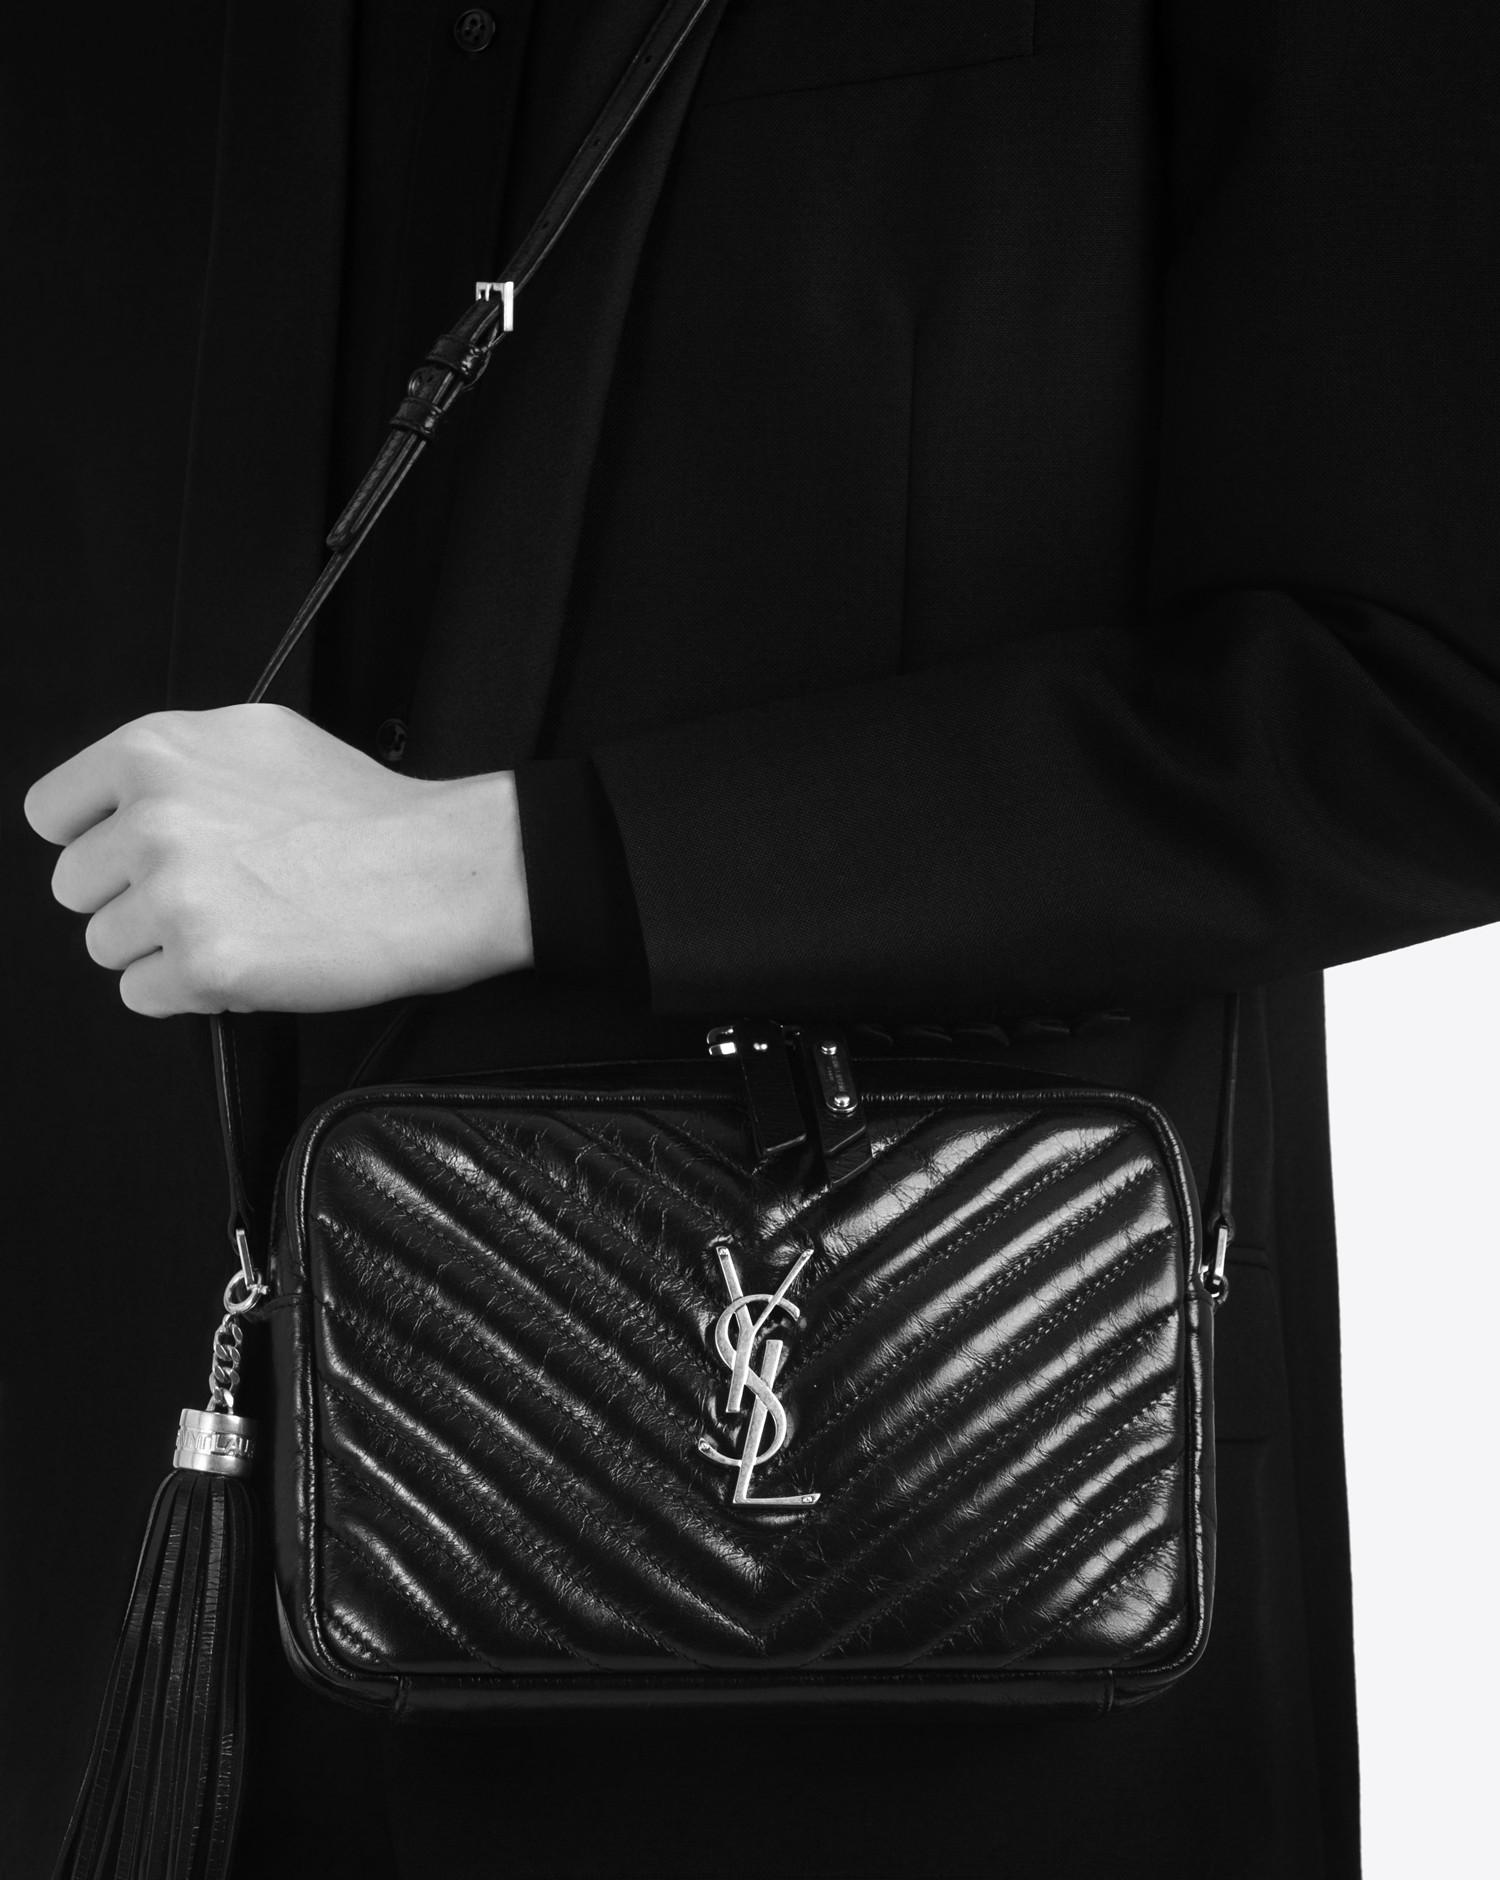 c85c8c0ba668 Lyst - Saint Laurent Lou Small Matelassé Leather Camera Shoulder Bag ...